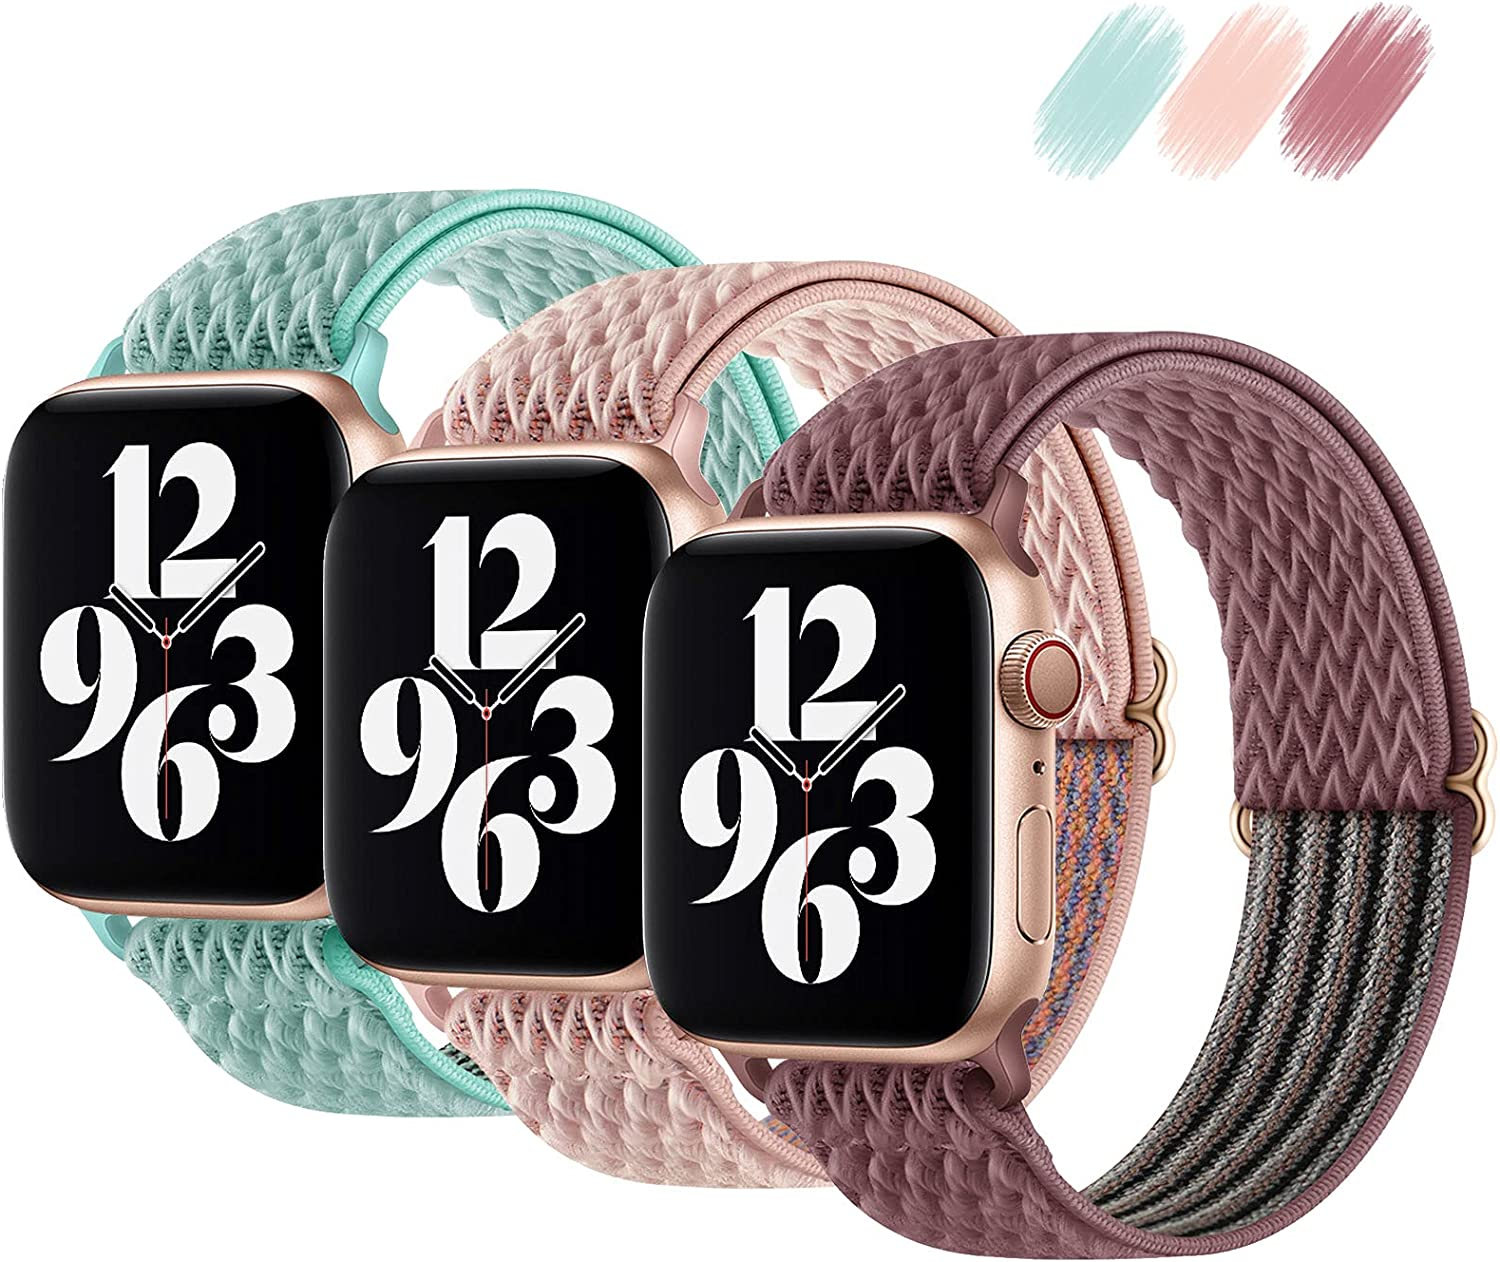 Fullife 3-Pack Stretchy Solo Loop Strap Compatible with Apple Watch Bands 38mm 40mm, Adjustable Stretch Braided Sport Elastics Nylon Women Men Wristband Compatible with iWatch Series 6/5/4/3/2/1 SE